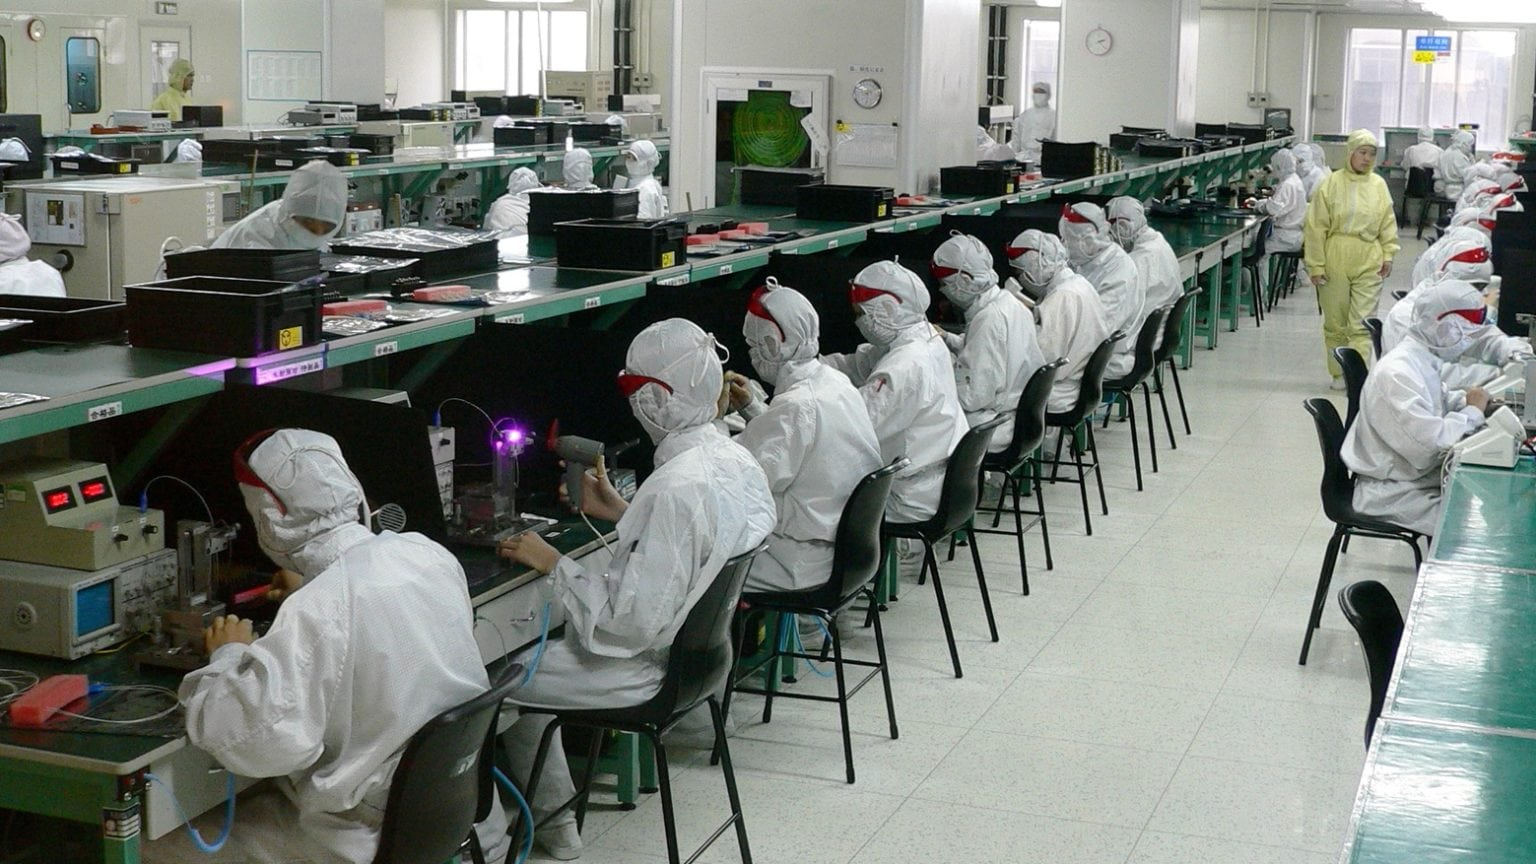 Coronavirus-related shutdowns continue to disrupt Chinese factories.